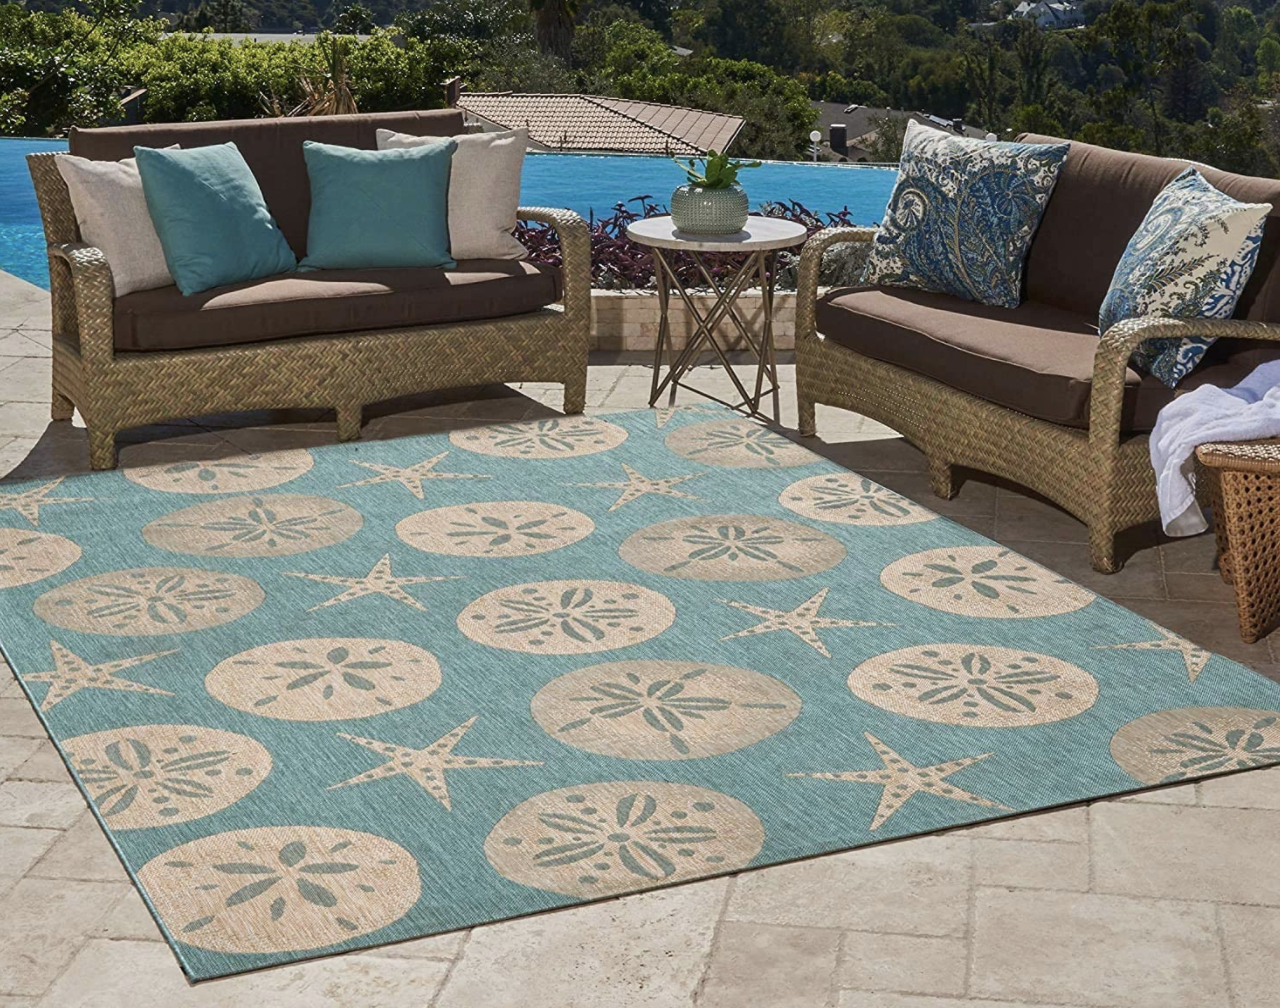 A starfish-patterned blue and nude rug placed next to patio furniture